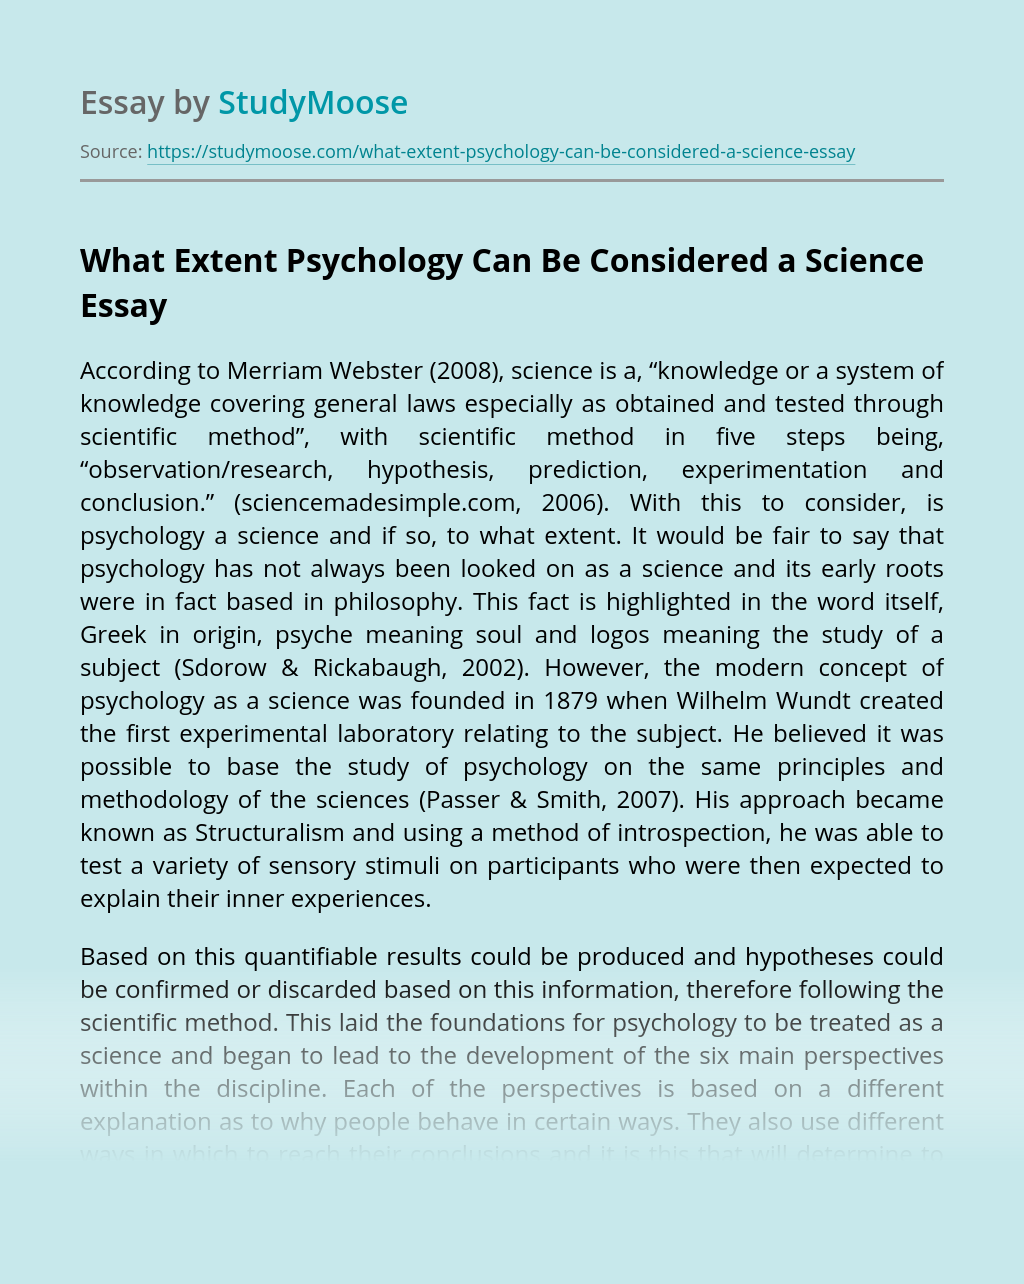 What Extent Psychology Can Be Considered a Science?